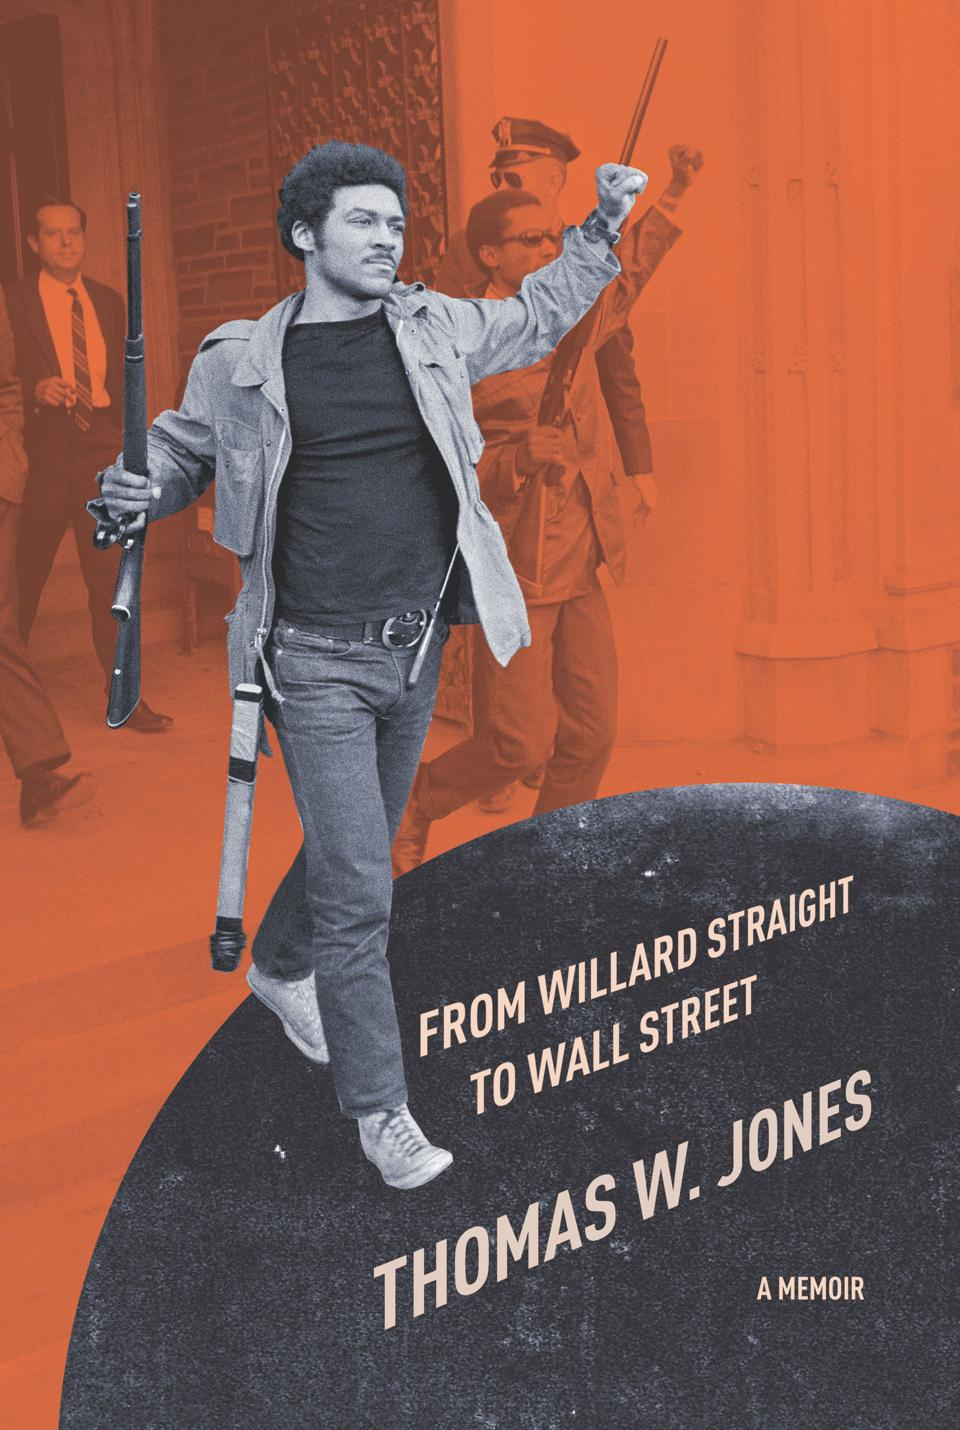 Tom Jones led the armed takeover of Willard Straight Hall at Cornell University in 1969.